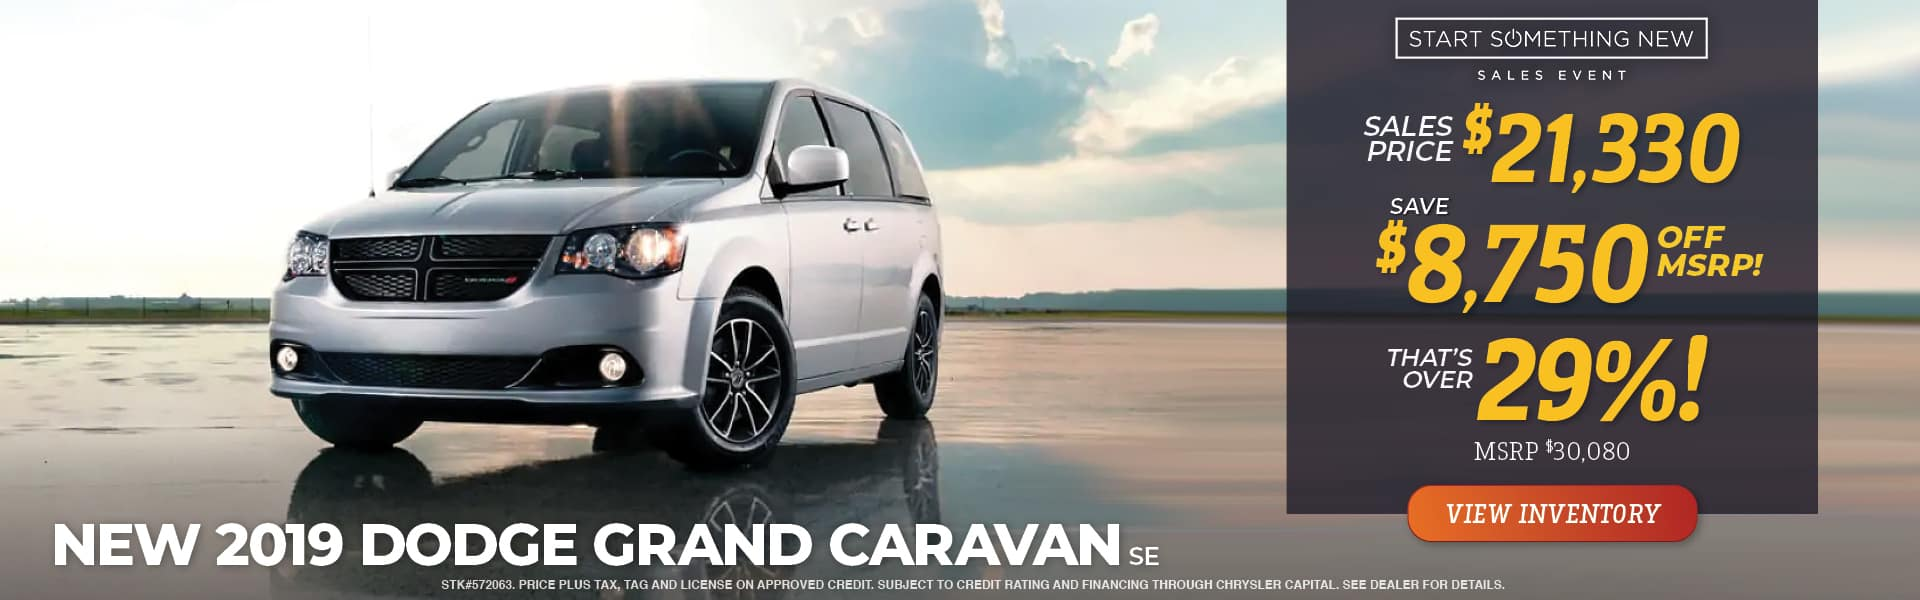 New Dodge Grand Caravan for Sale in Cleveland, TX